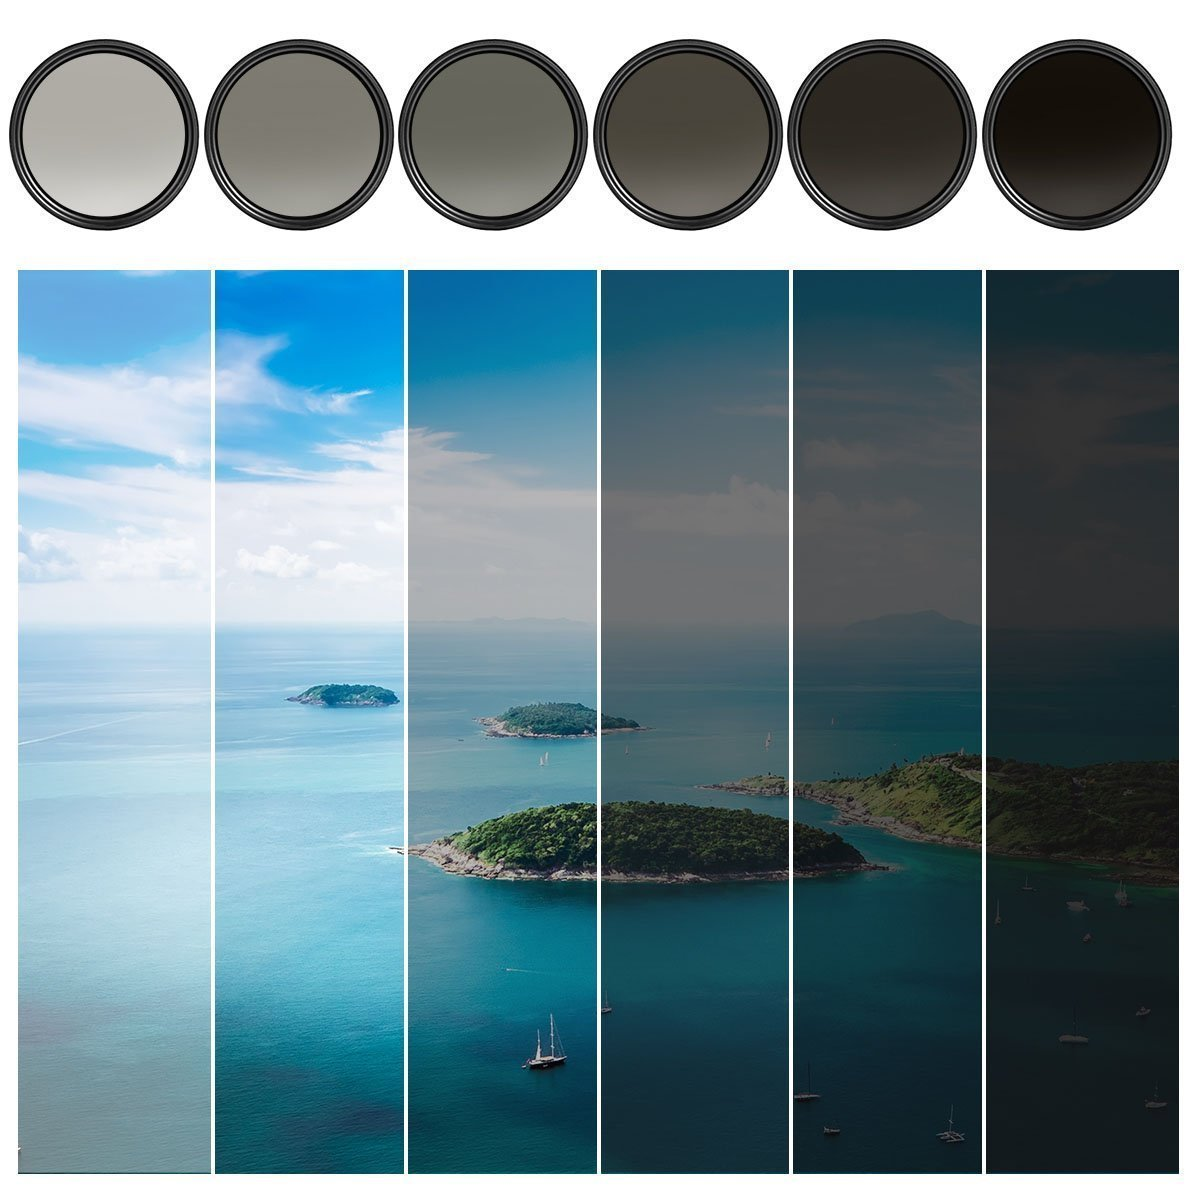 62MM Variable Neutral Density Slim Filter - ND ND2 to ND400 Filter For Canon, Nikon, Sony, Sigma, Fujifilm, Fuji, FUJINON, Carl Zeiss Lens